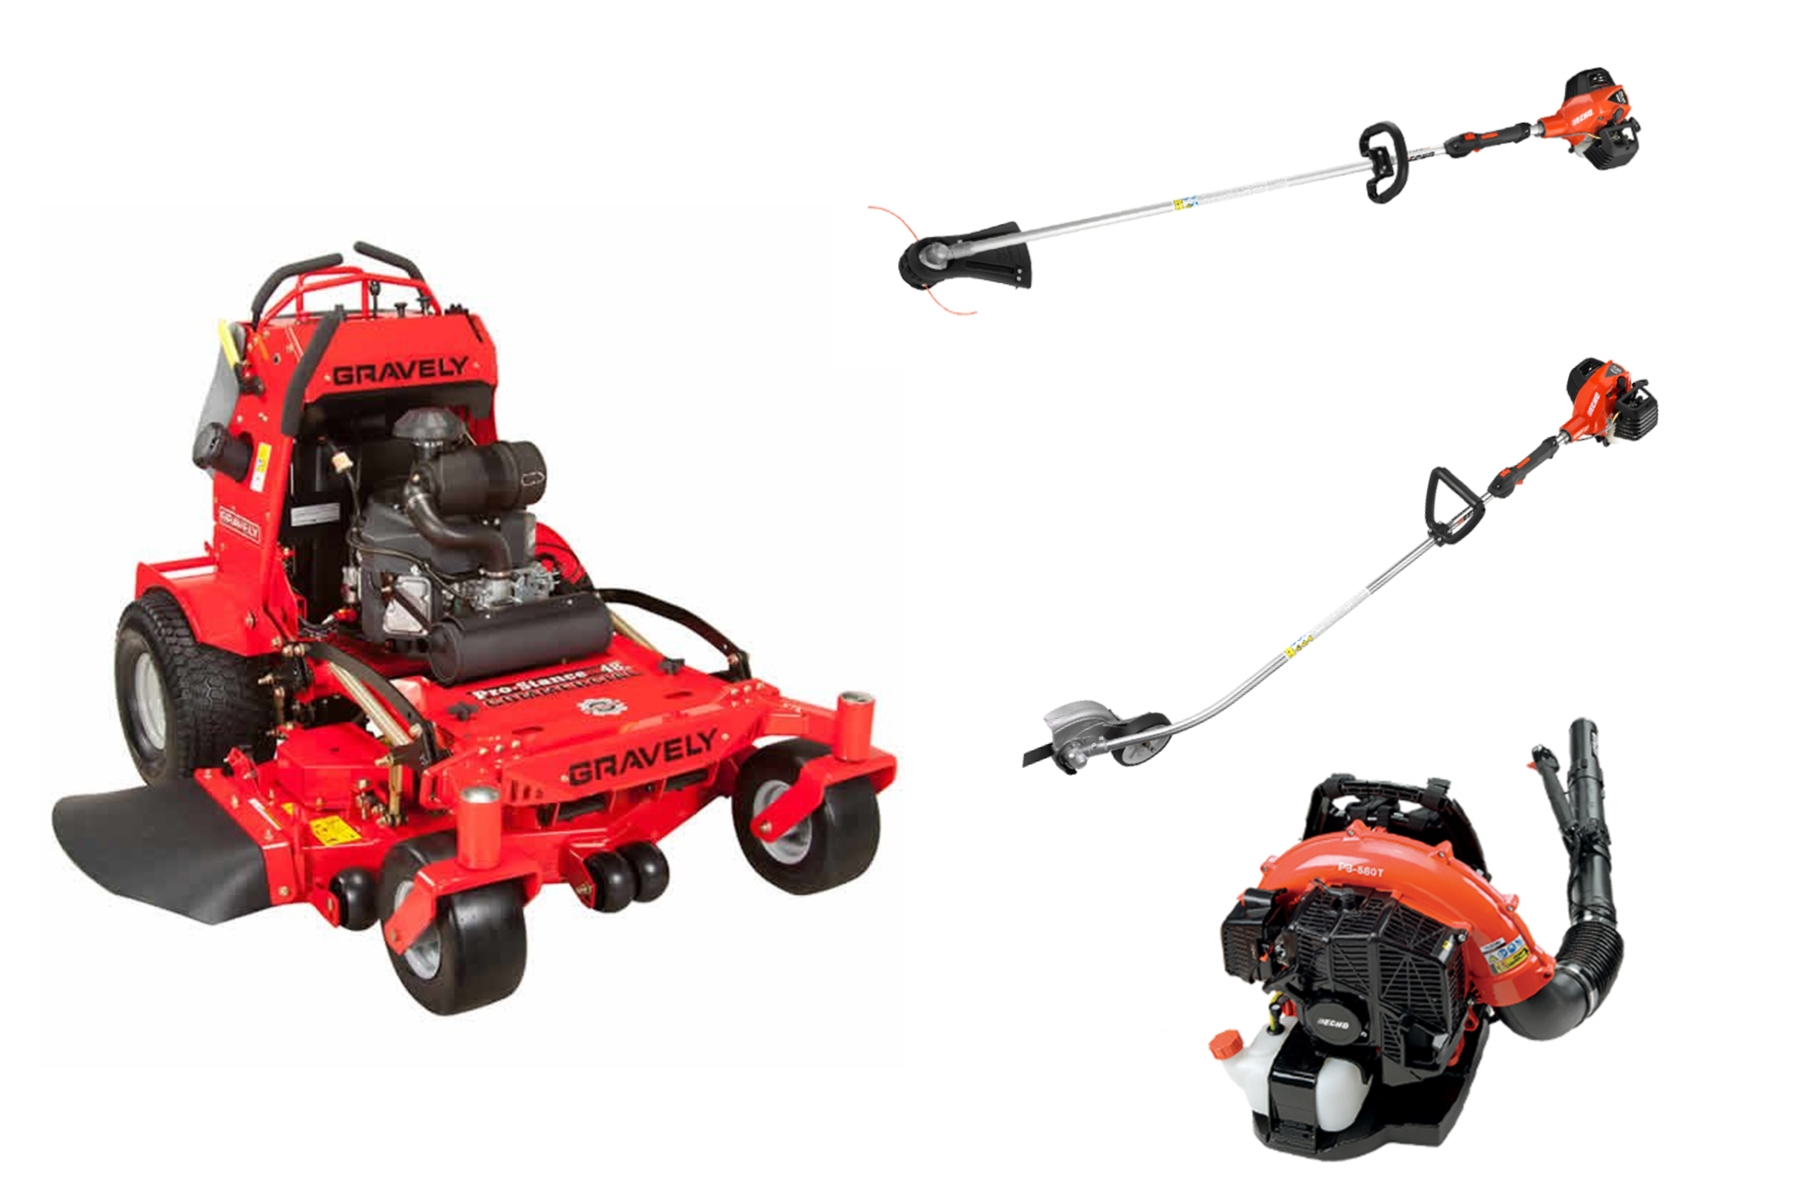 GE701 Gravely Mower Bundle - Pro-Stance 48 Stand On PB-580T Blower SRM-2620  Trimmer